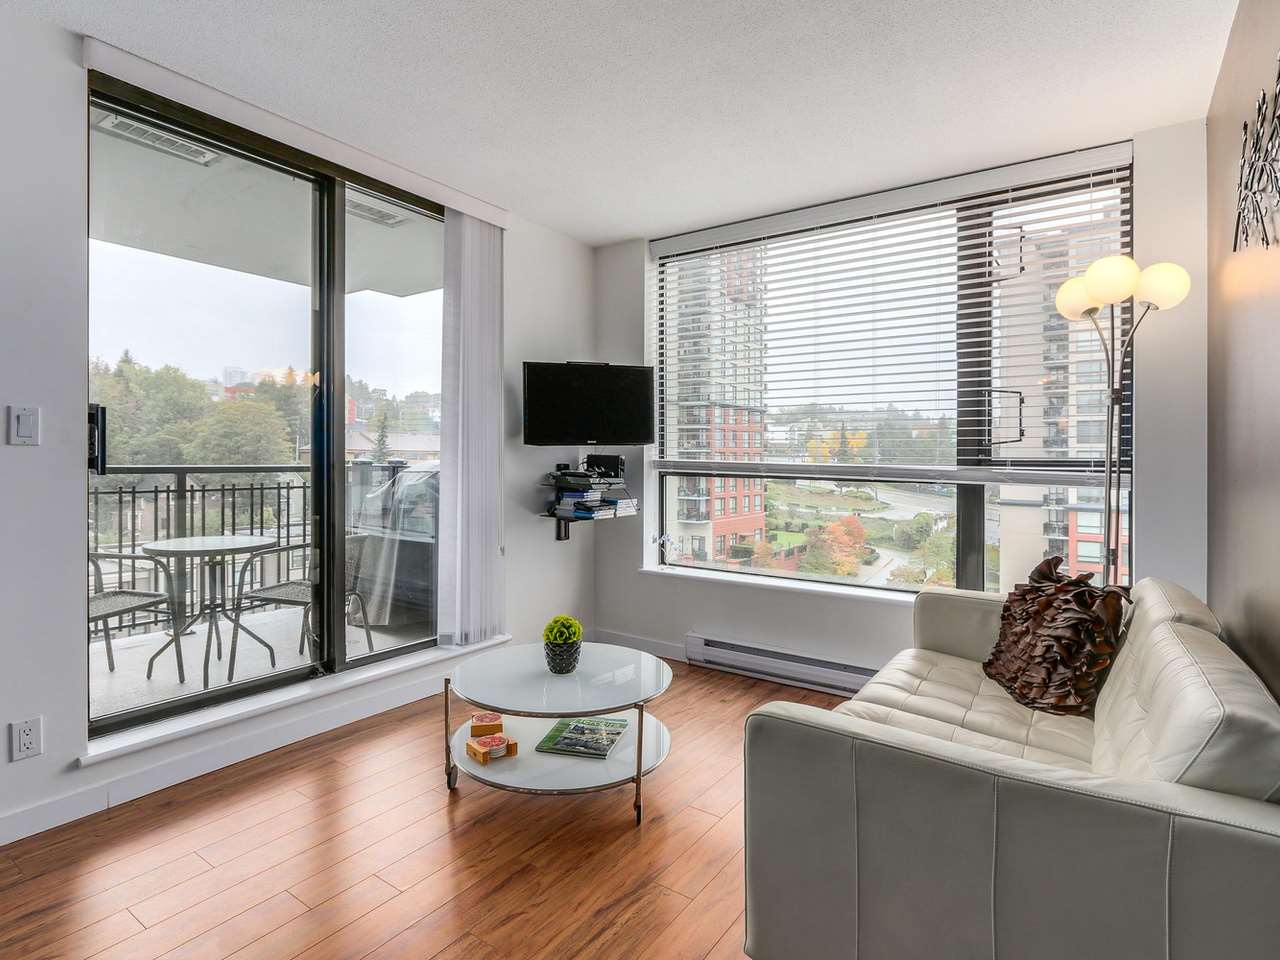 "Photo 10: 1204 833 AGNES Street in New Westminster: Downtown NW Condo for sale in ""THE NEWS"" : MLS(r) # R2112018"